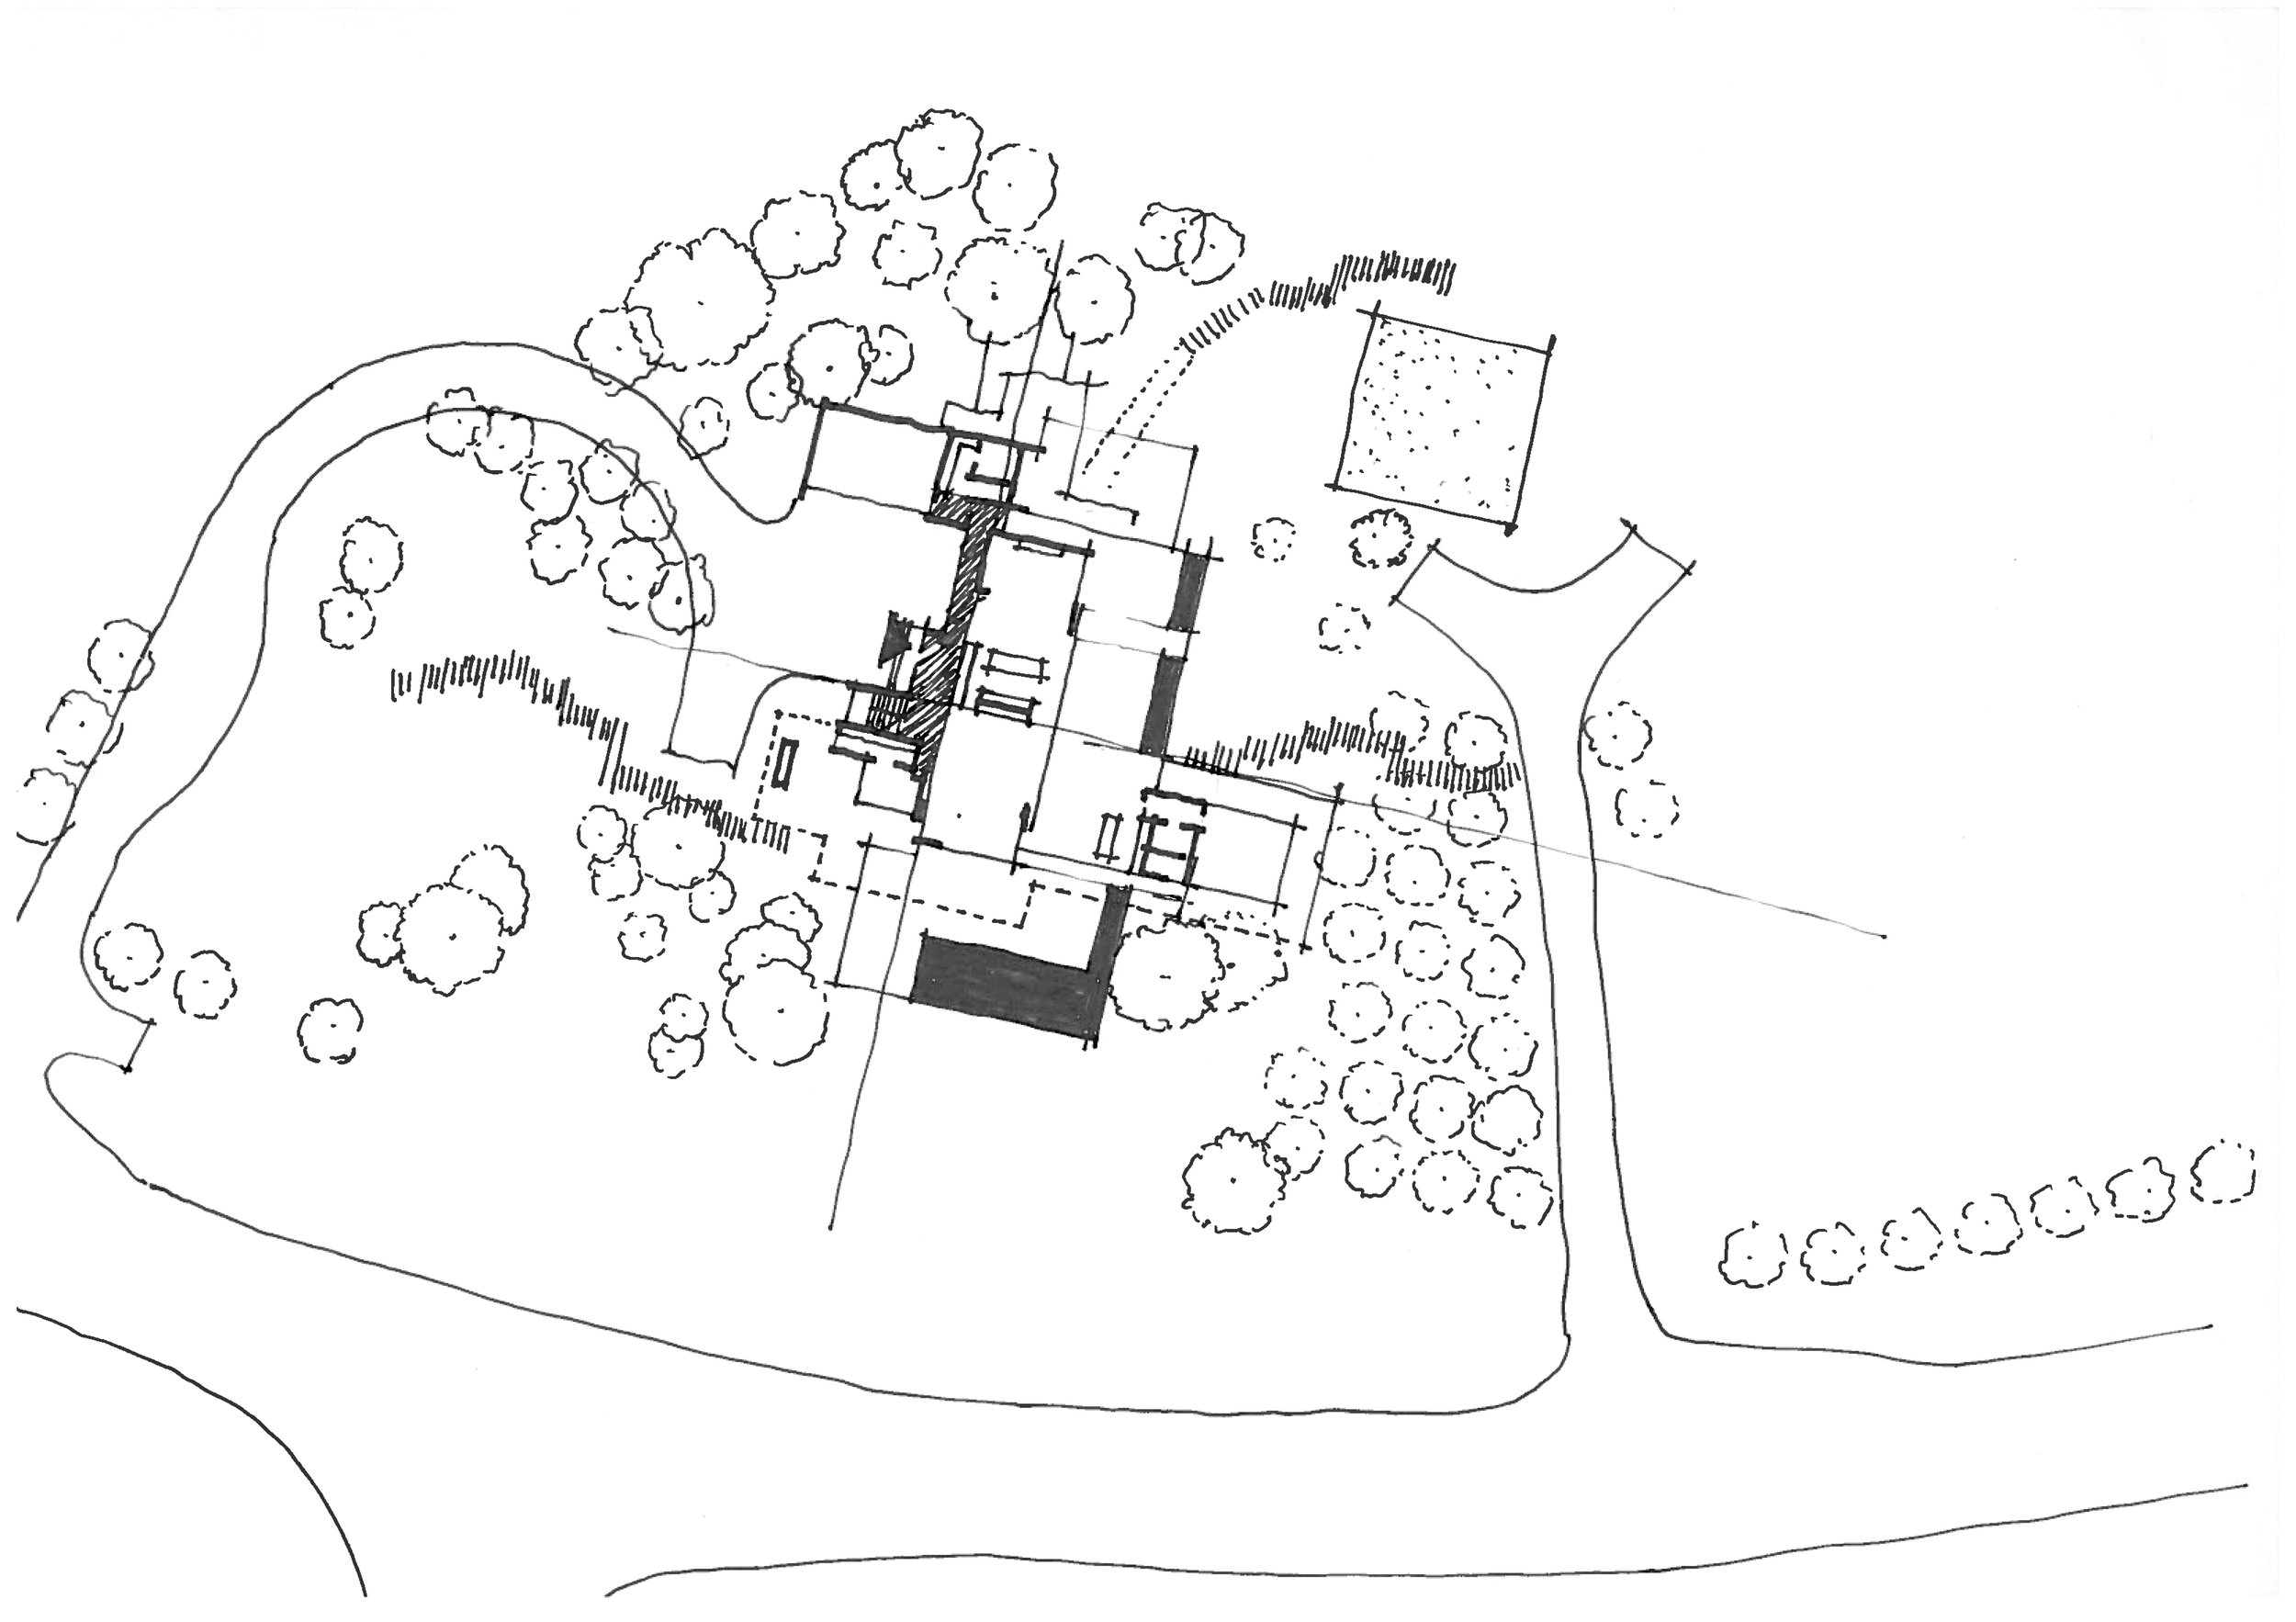 1313_site plan_Bob Sketch.jpg